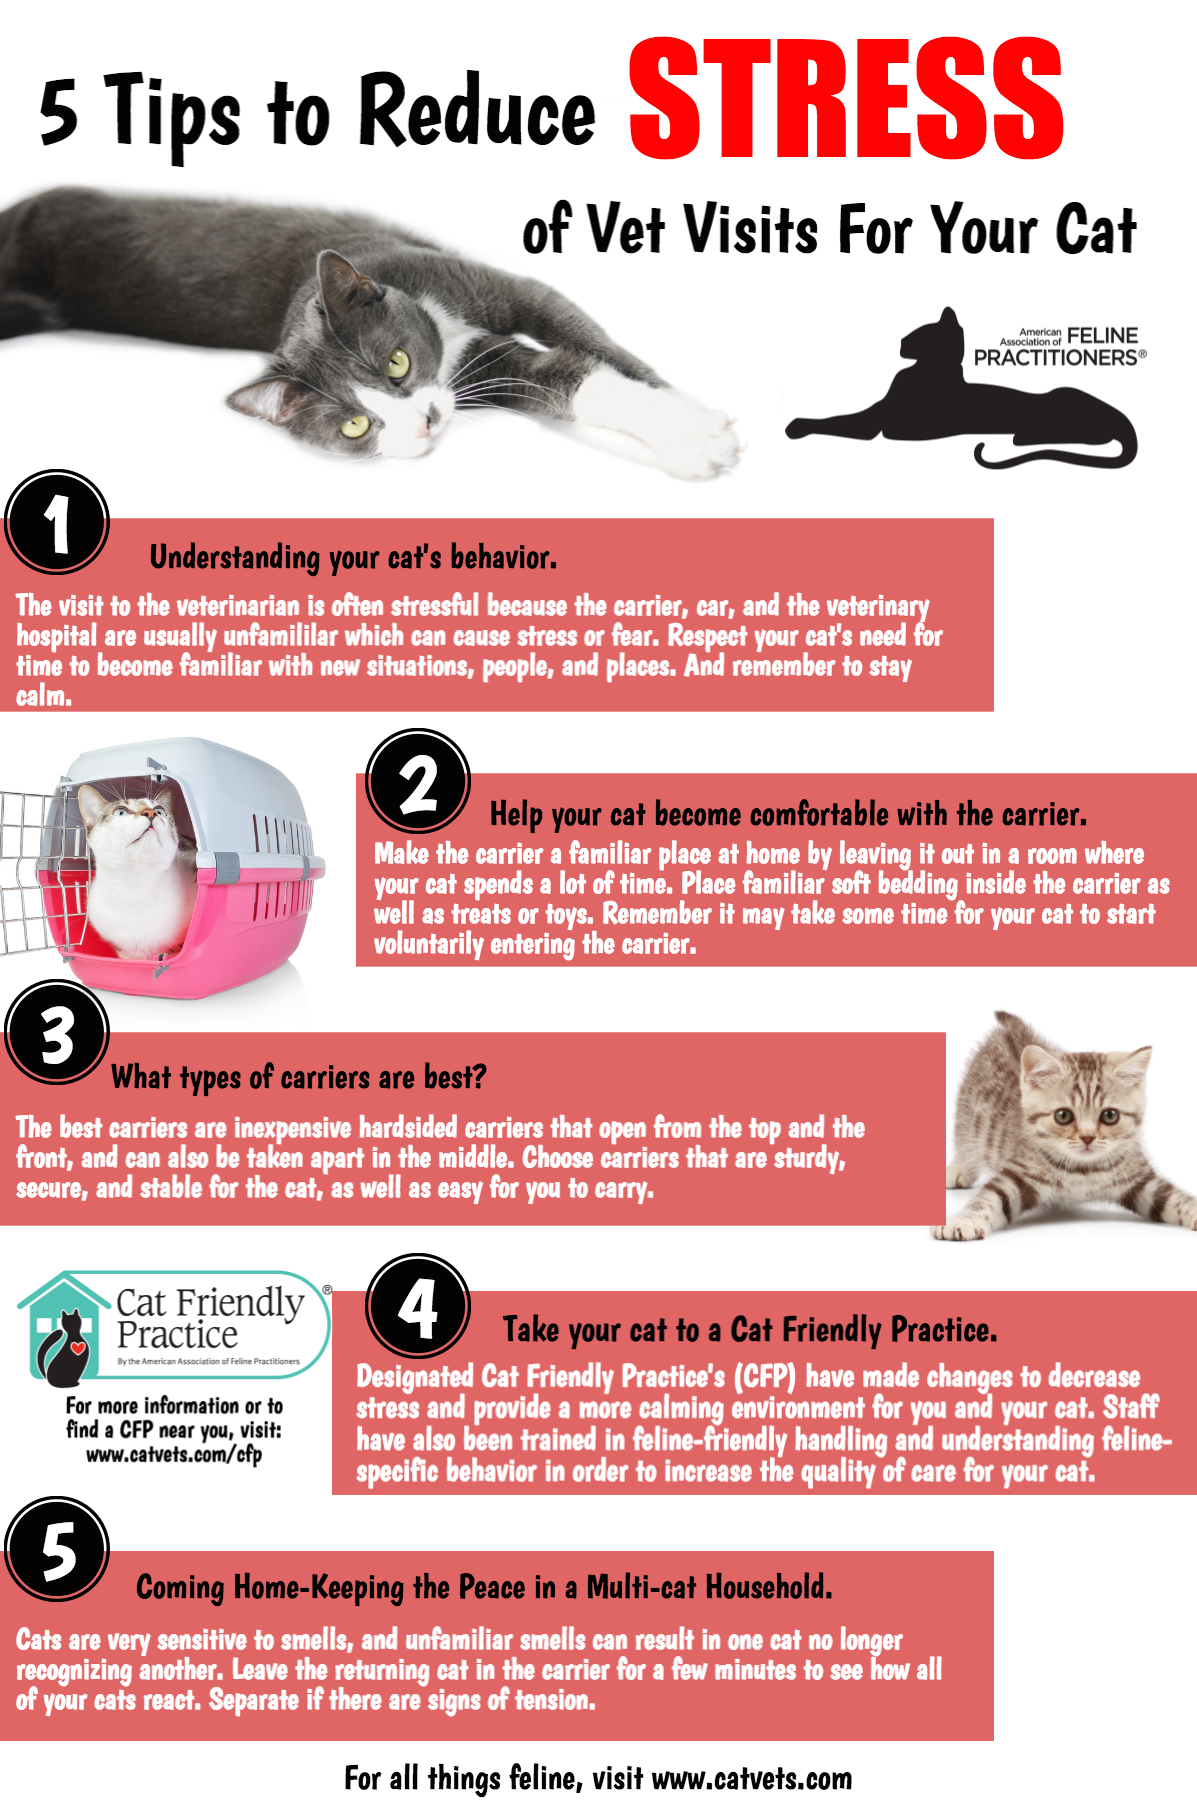 5-Tips-Reduce-Stress-Vet-Visits